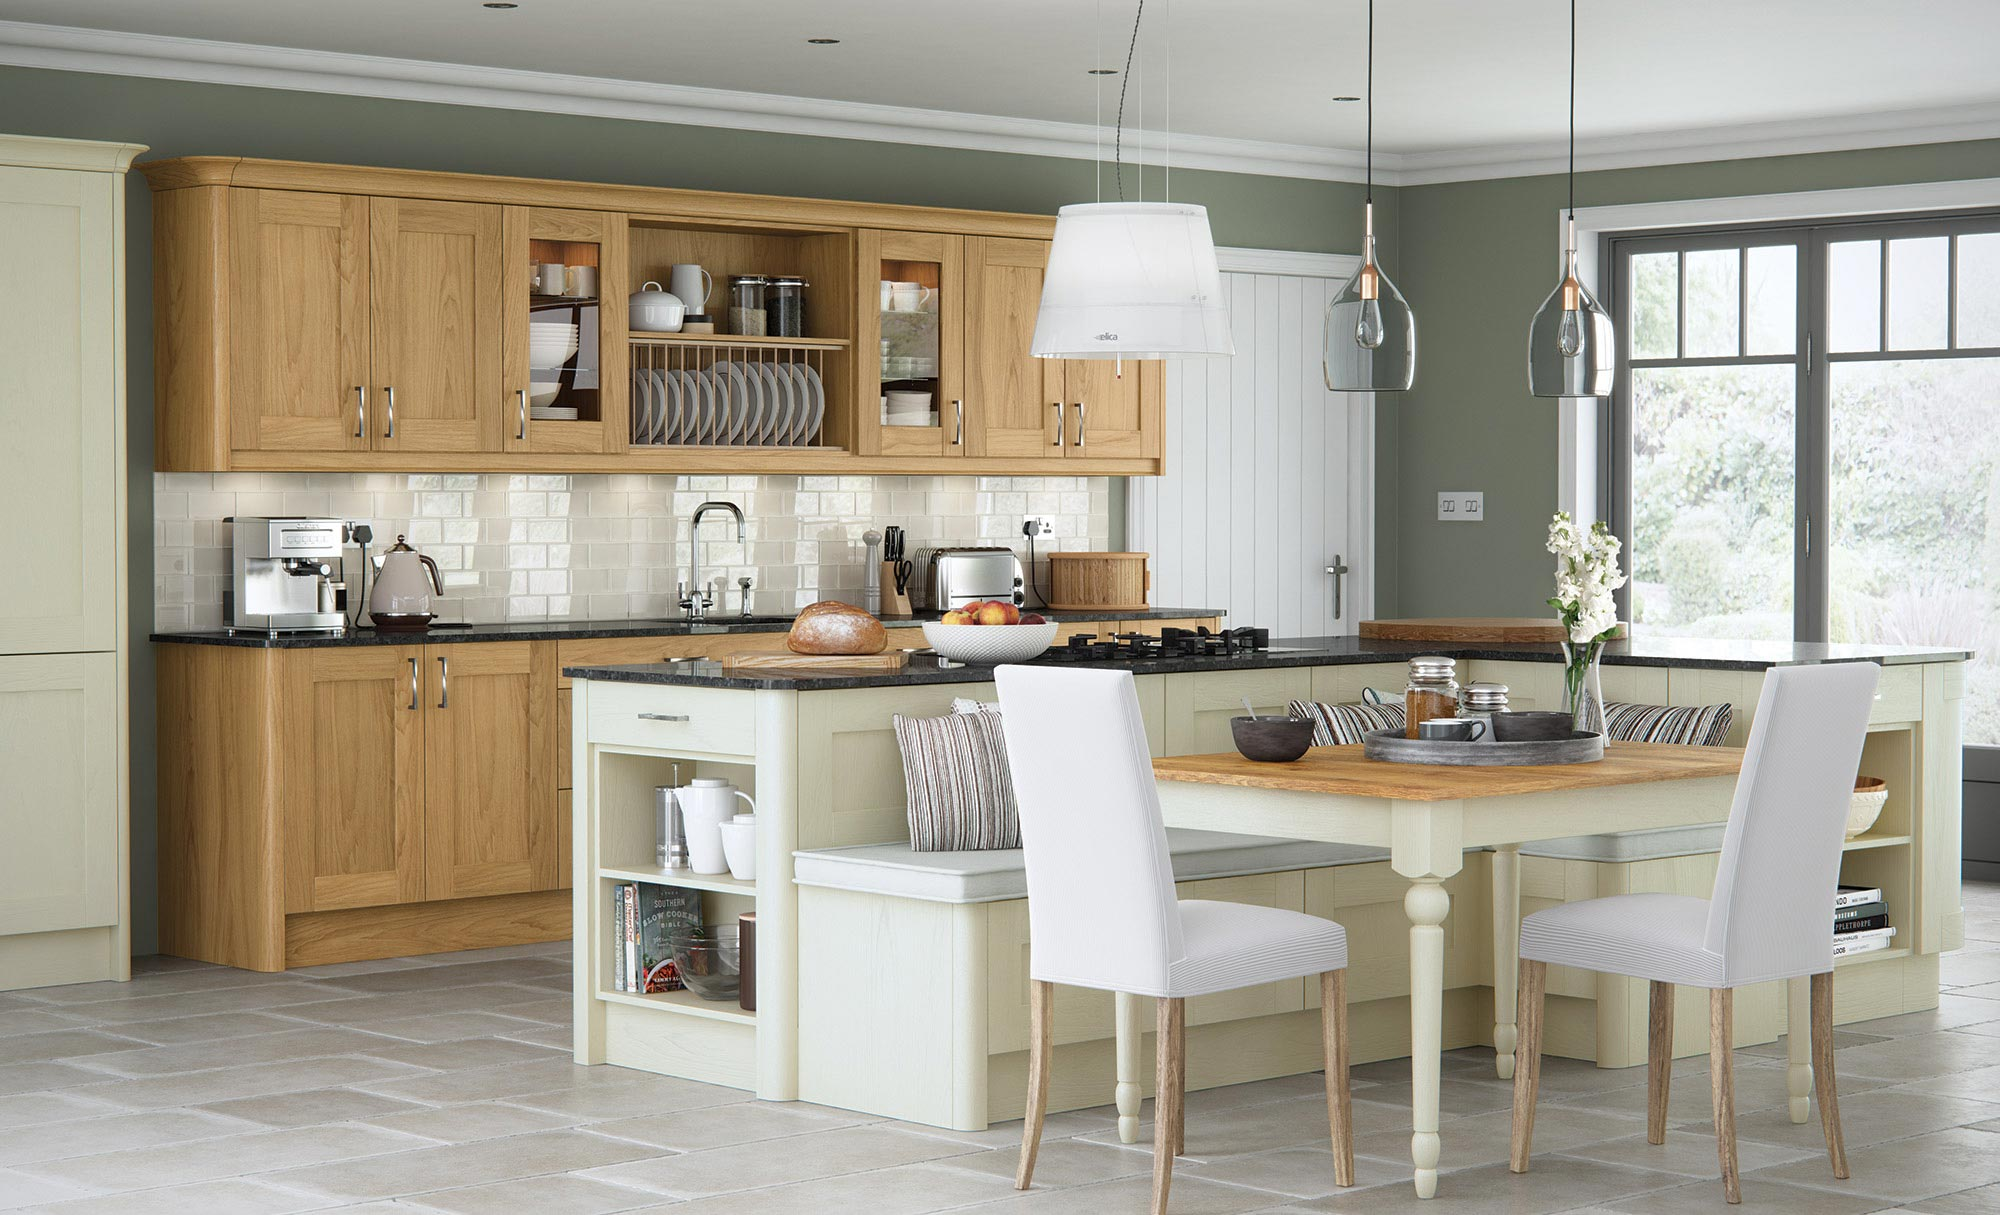 Contemporary shaker style kitchen in light oak and painted ivory